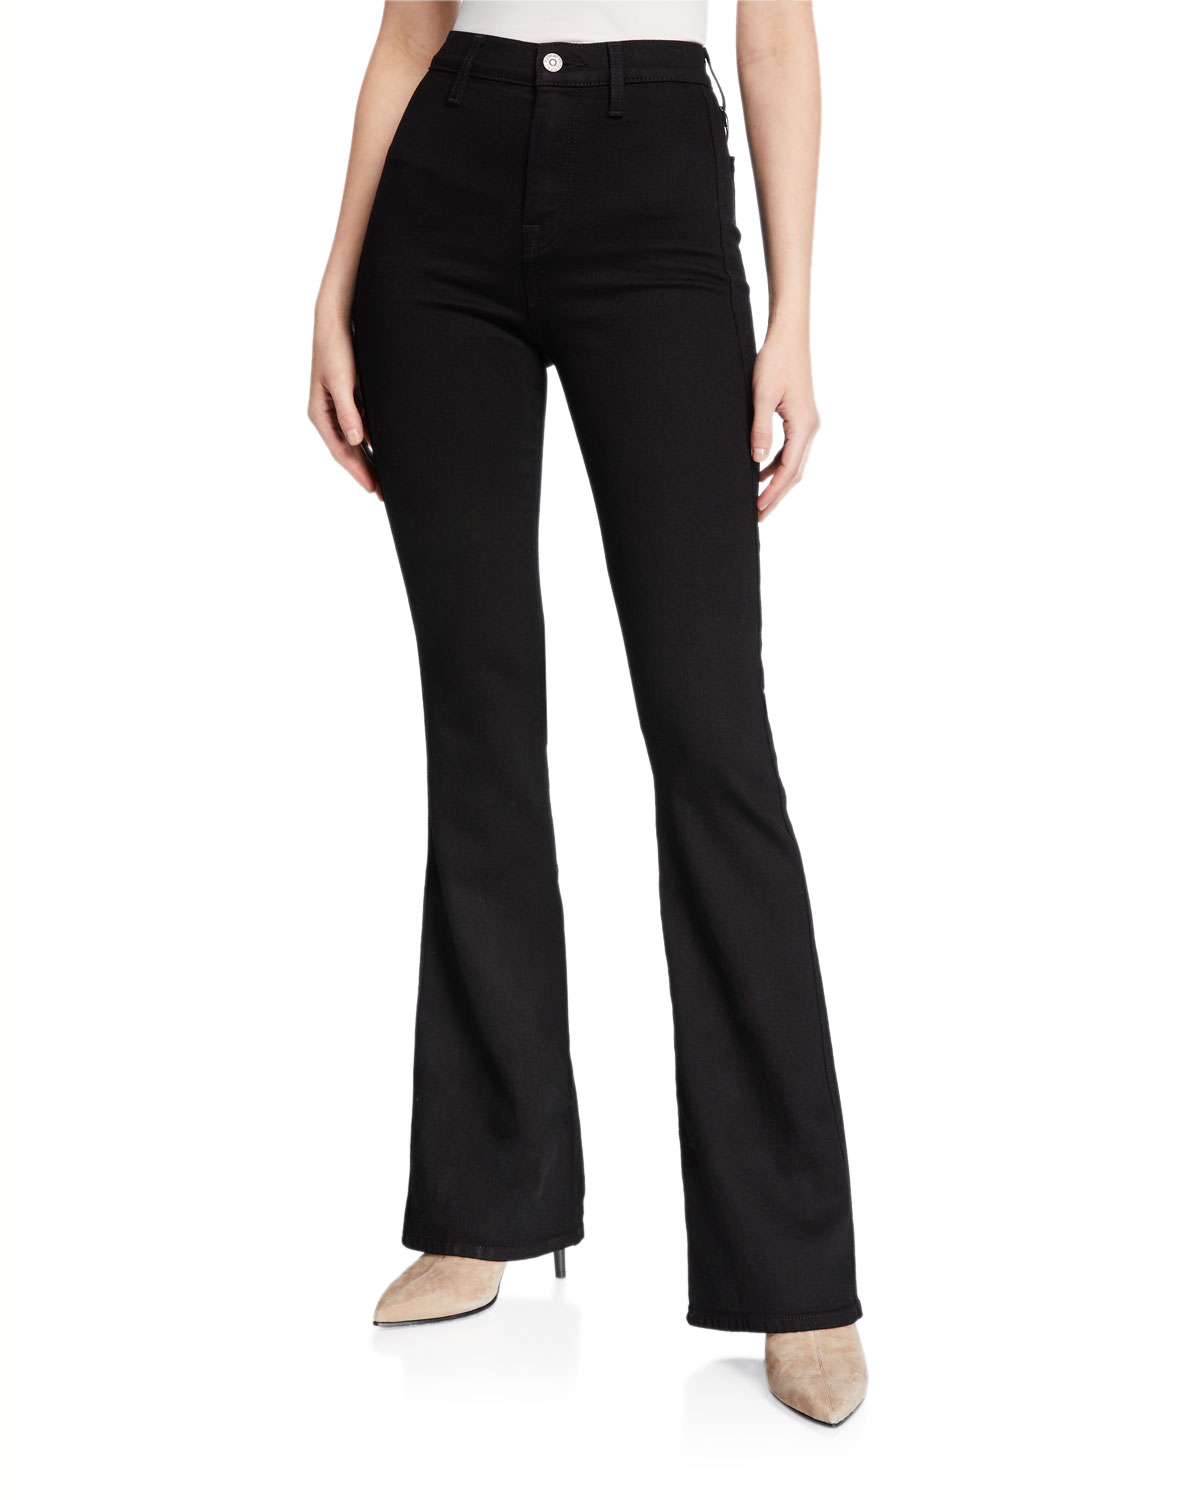 7 for all mankind Modern 'A' Pocket Wide-Leg Jeans